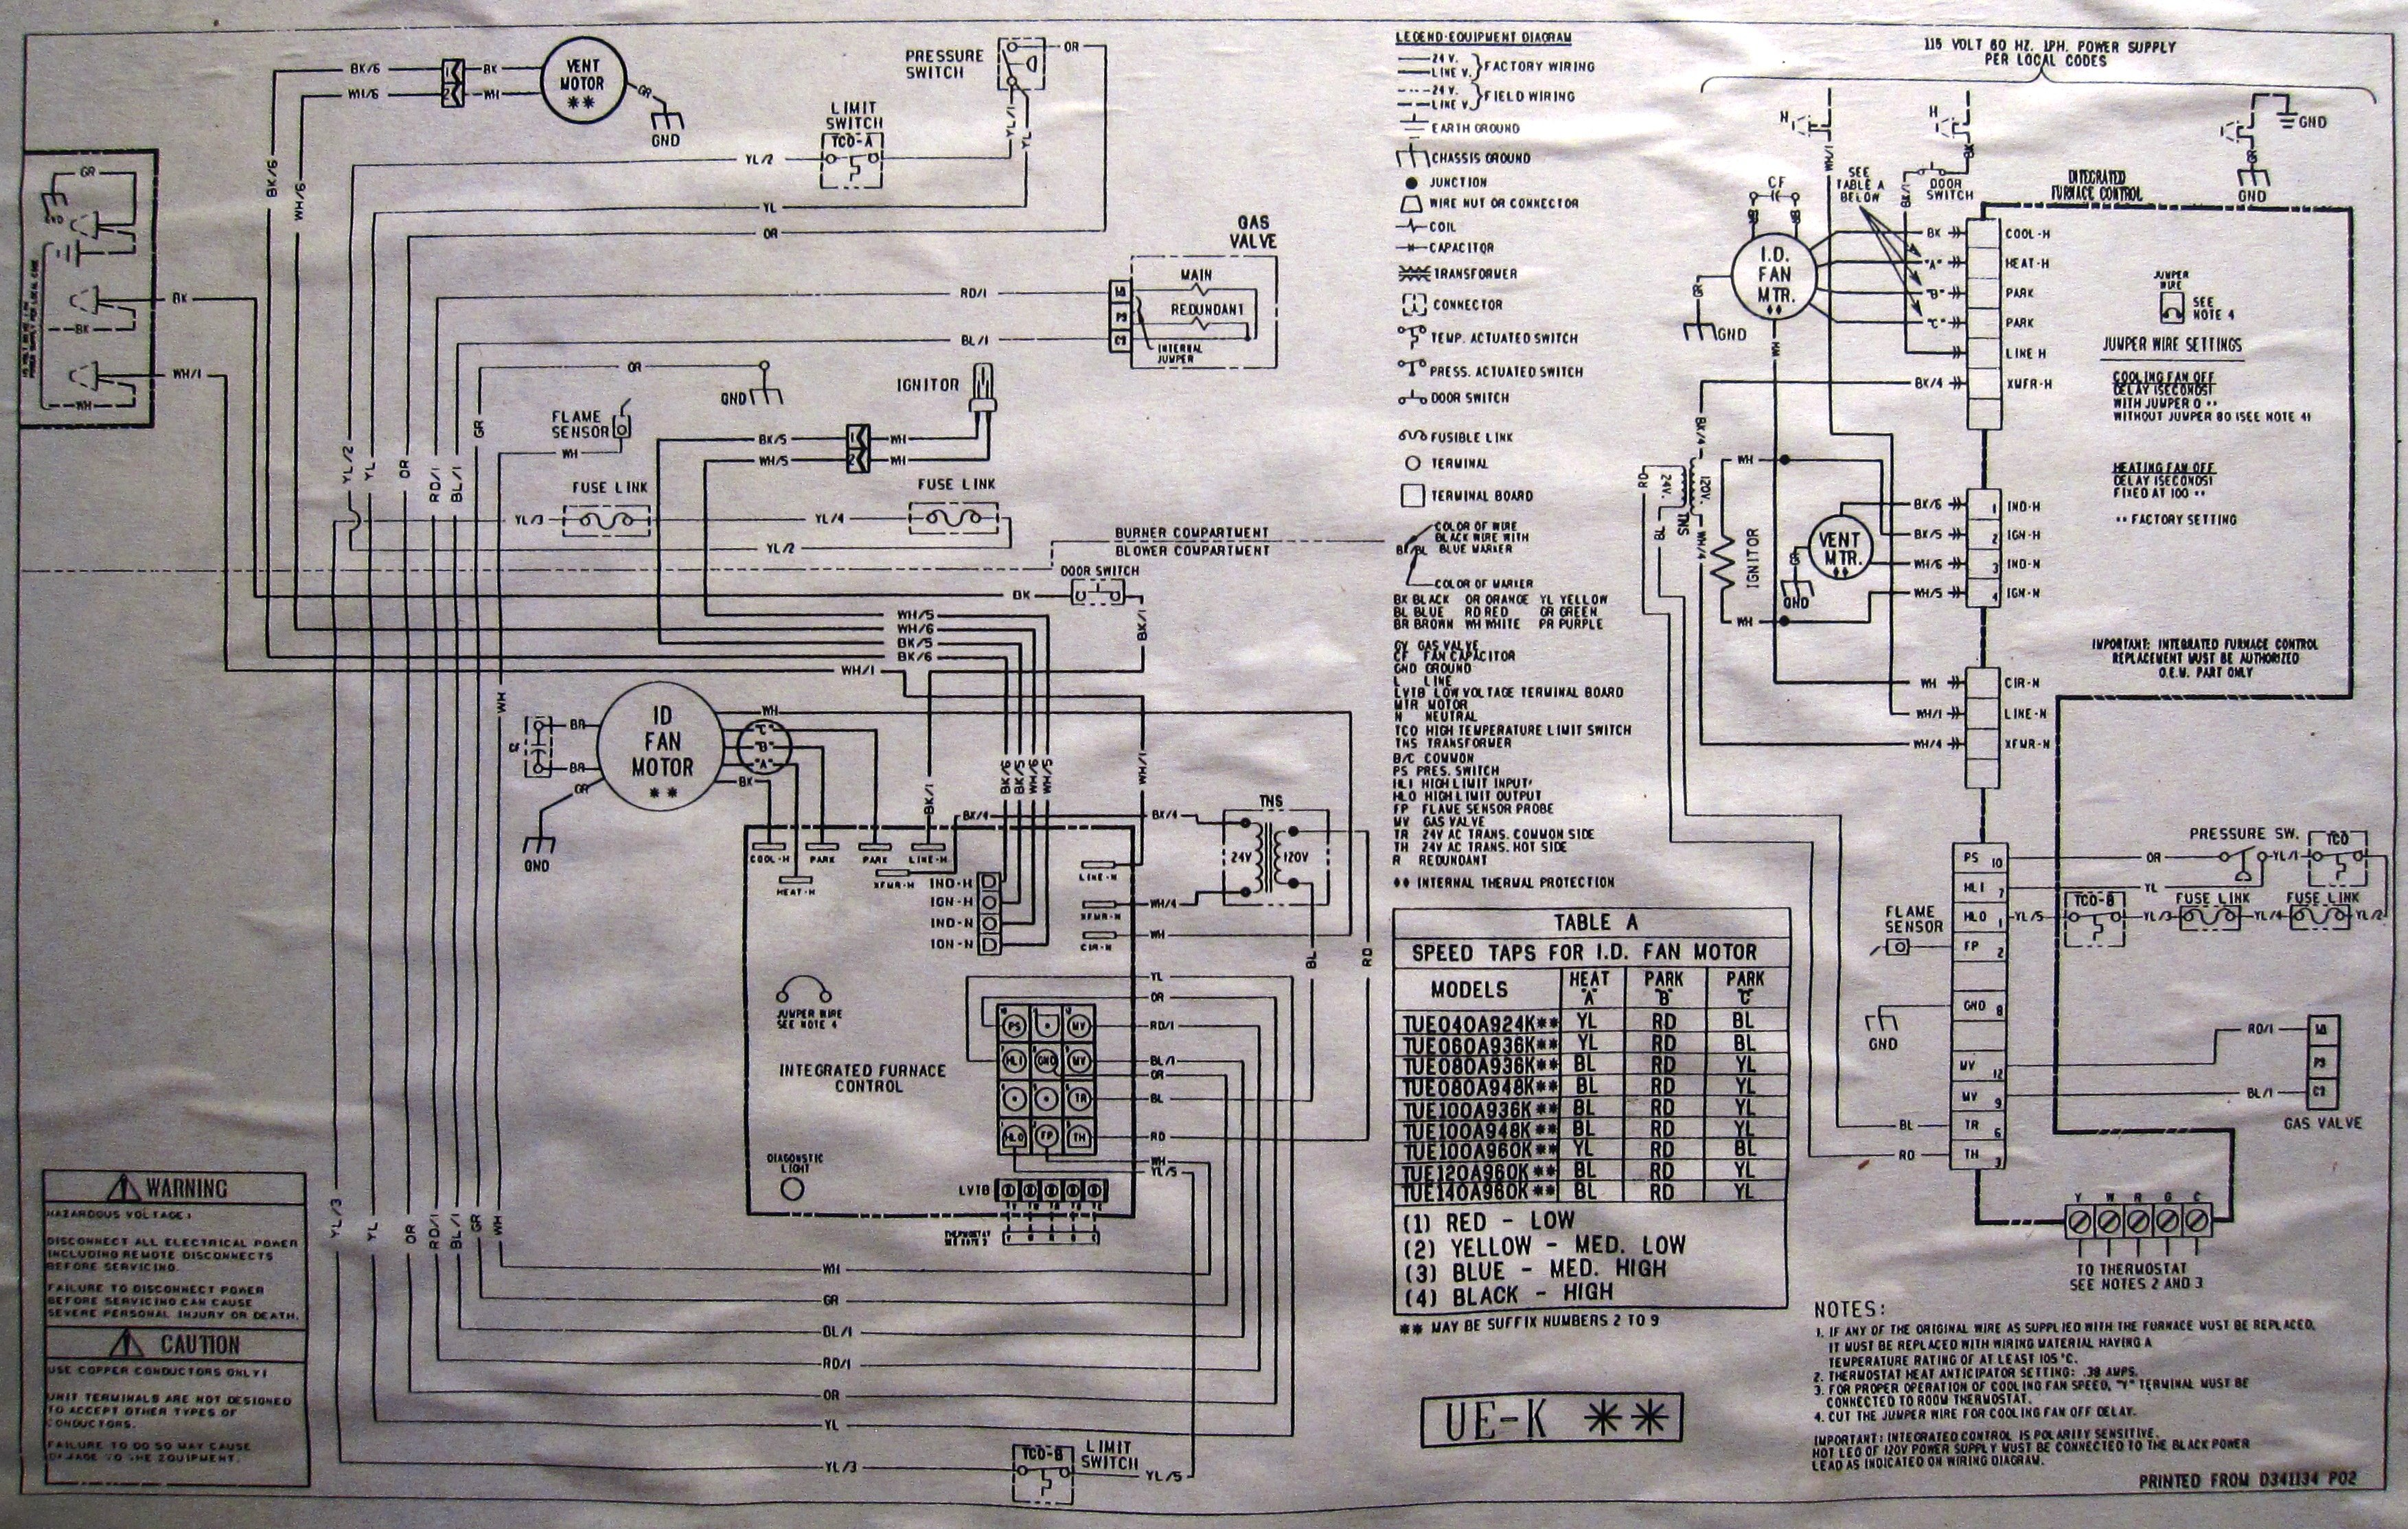 lasko fan motor wiring diagram schematic lasko model h20